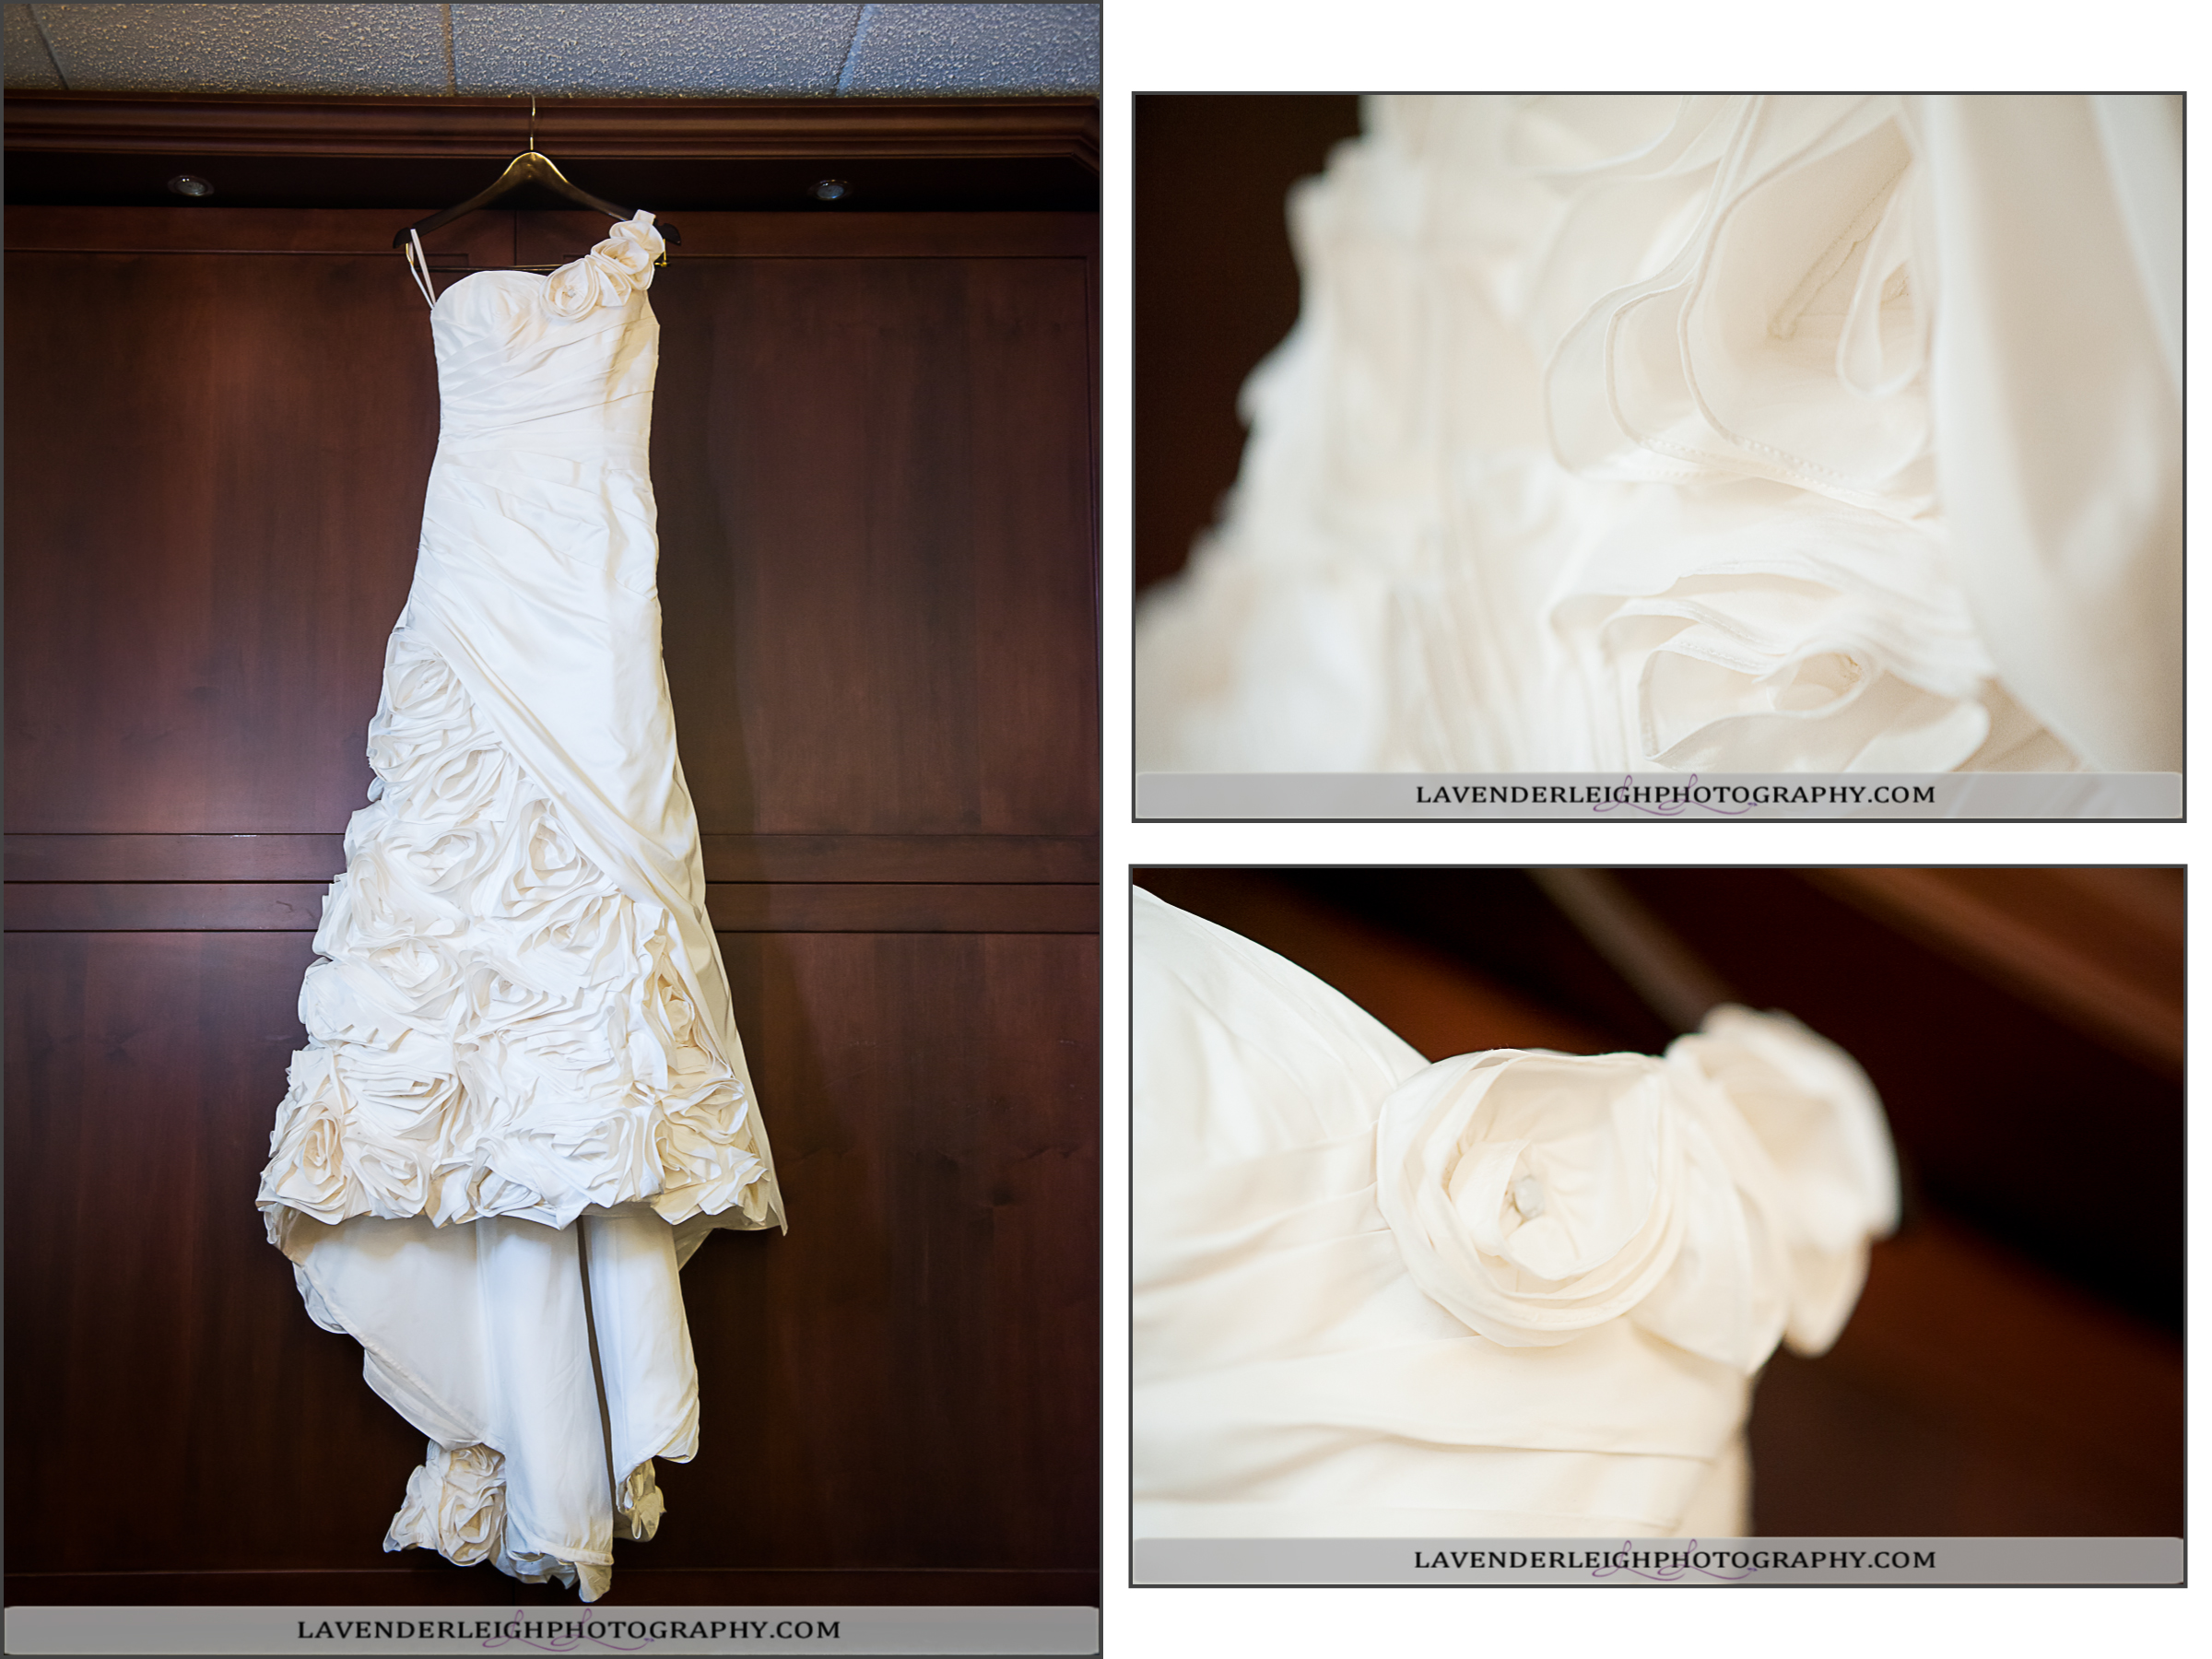 Wedding Dress Details|Lavender Leigh Photography